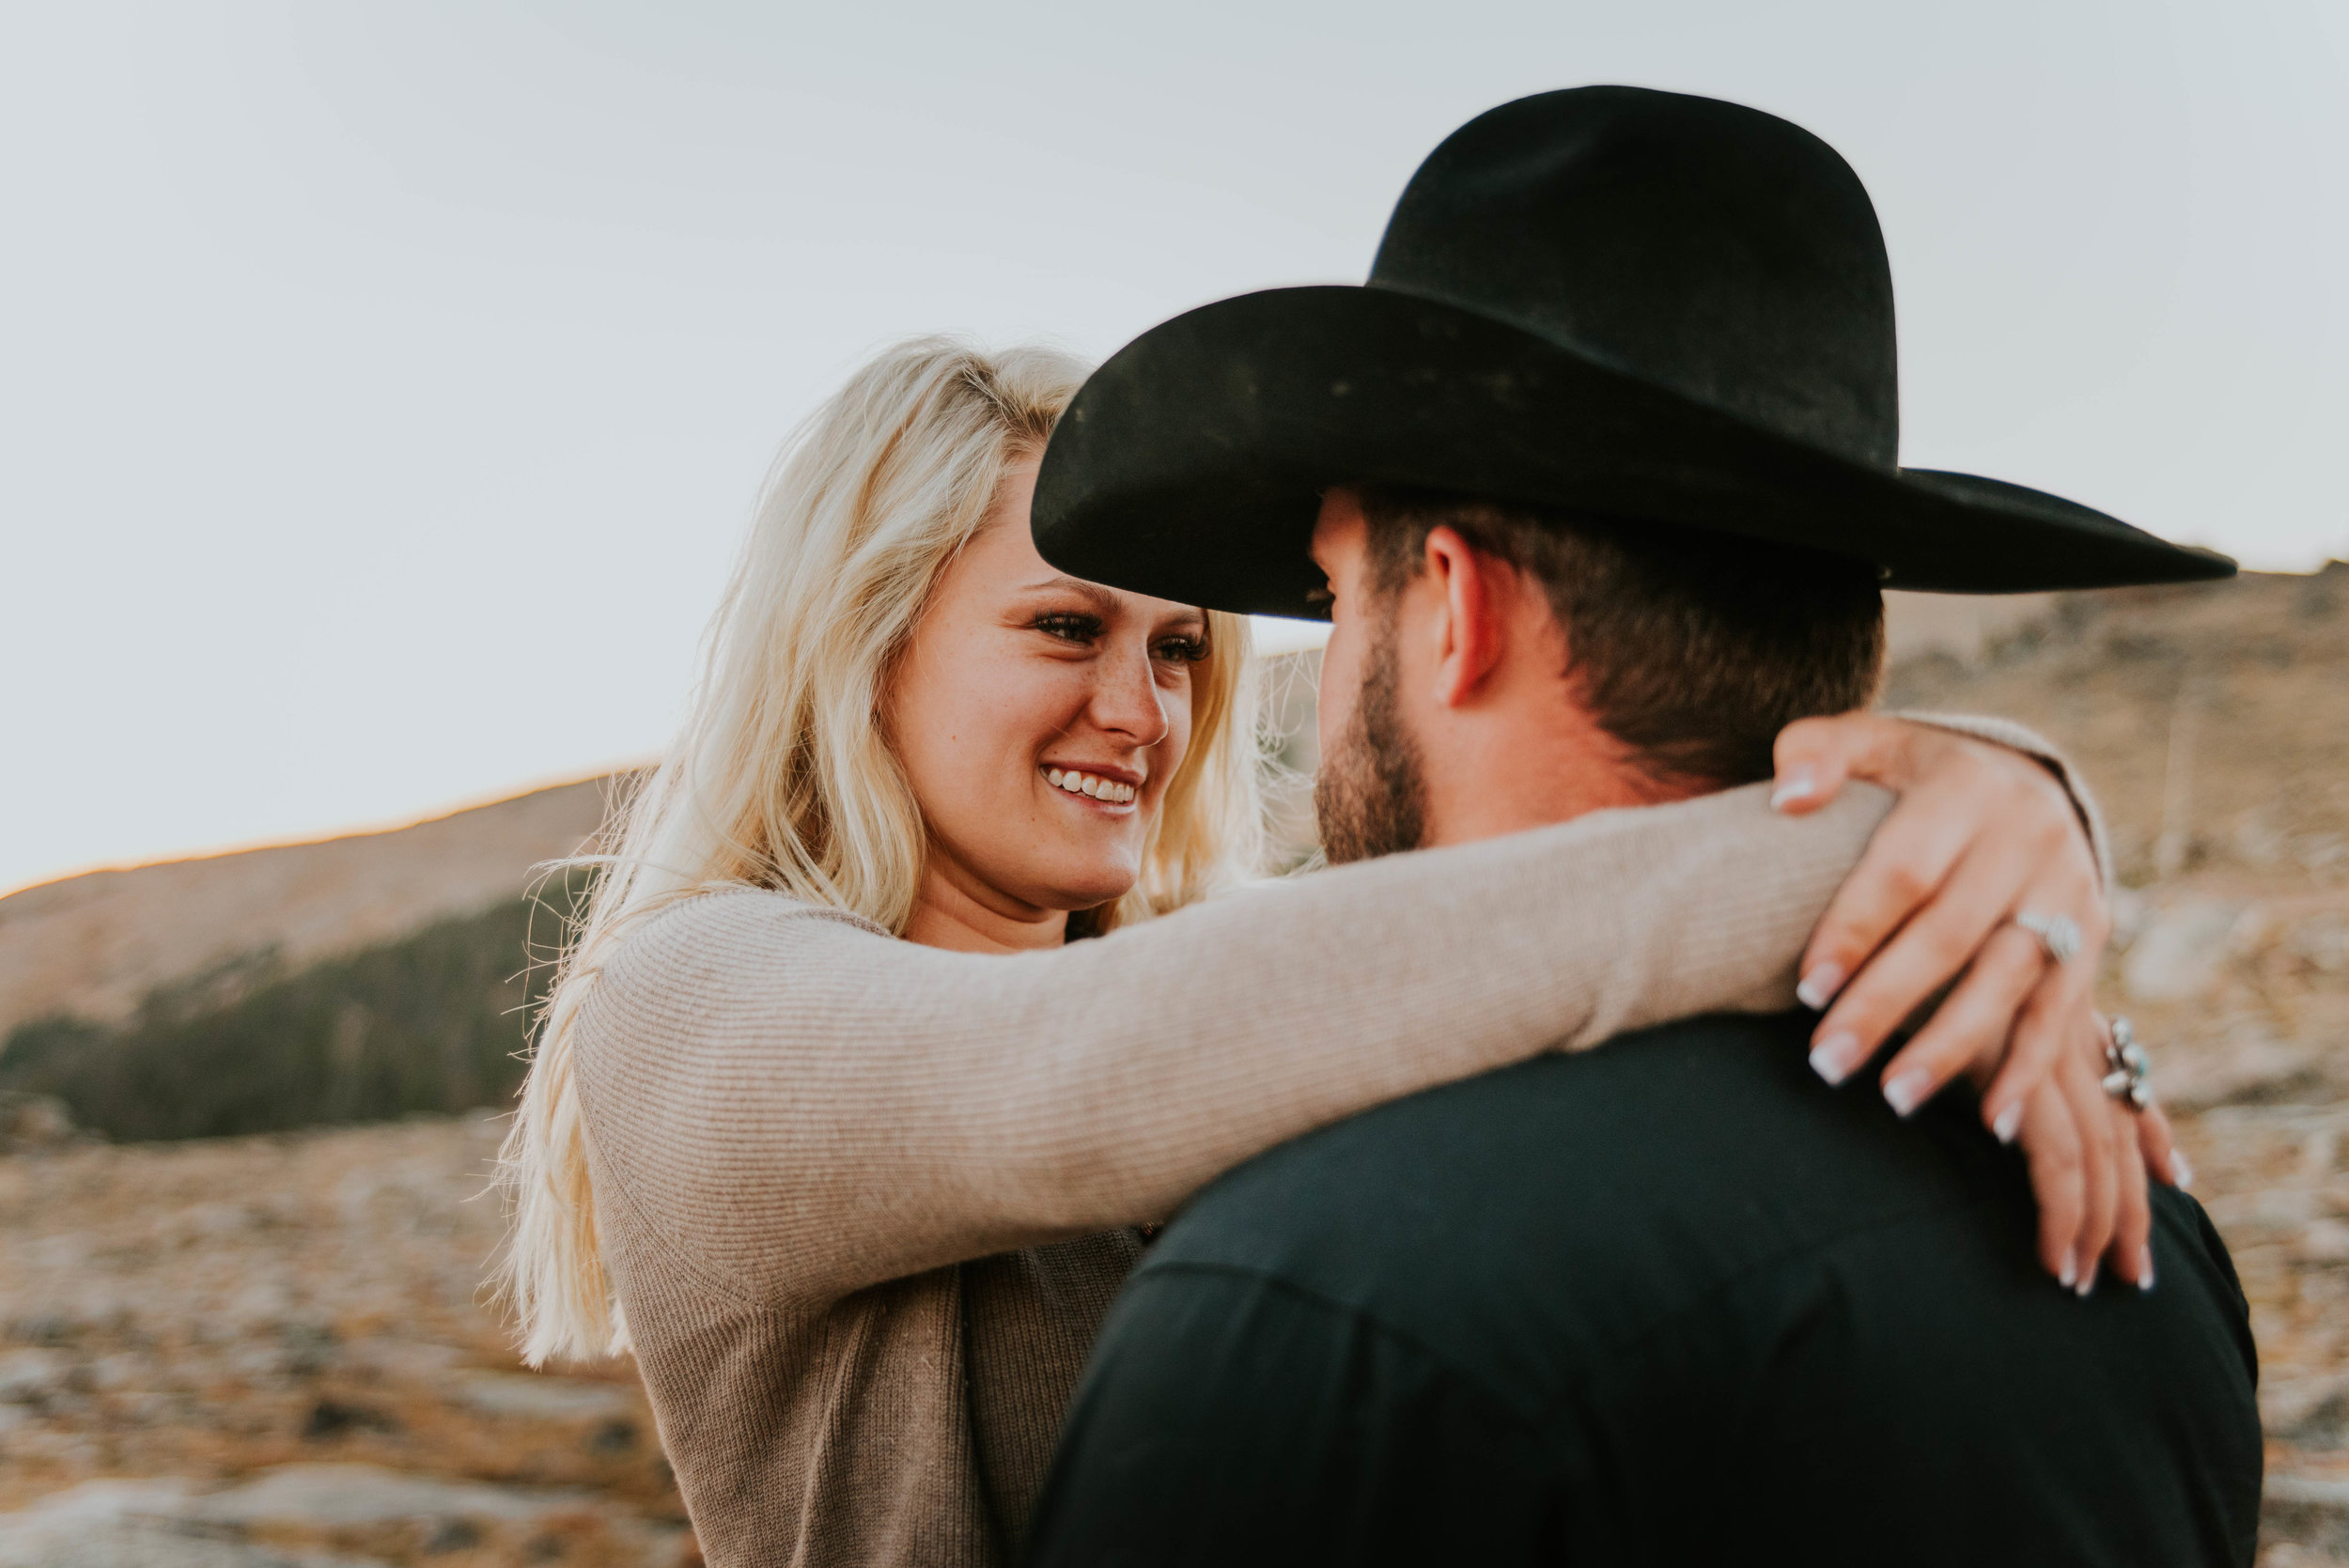 Miss. Miller's Photography | Trail Ridge Road Engagement Photos | Rocky Mountain National Park Engagement Photos | Estes Park Wedding Photographer | Colorado Wedding Photographer